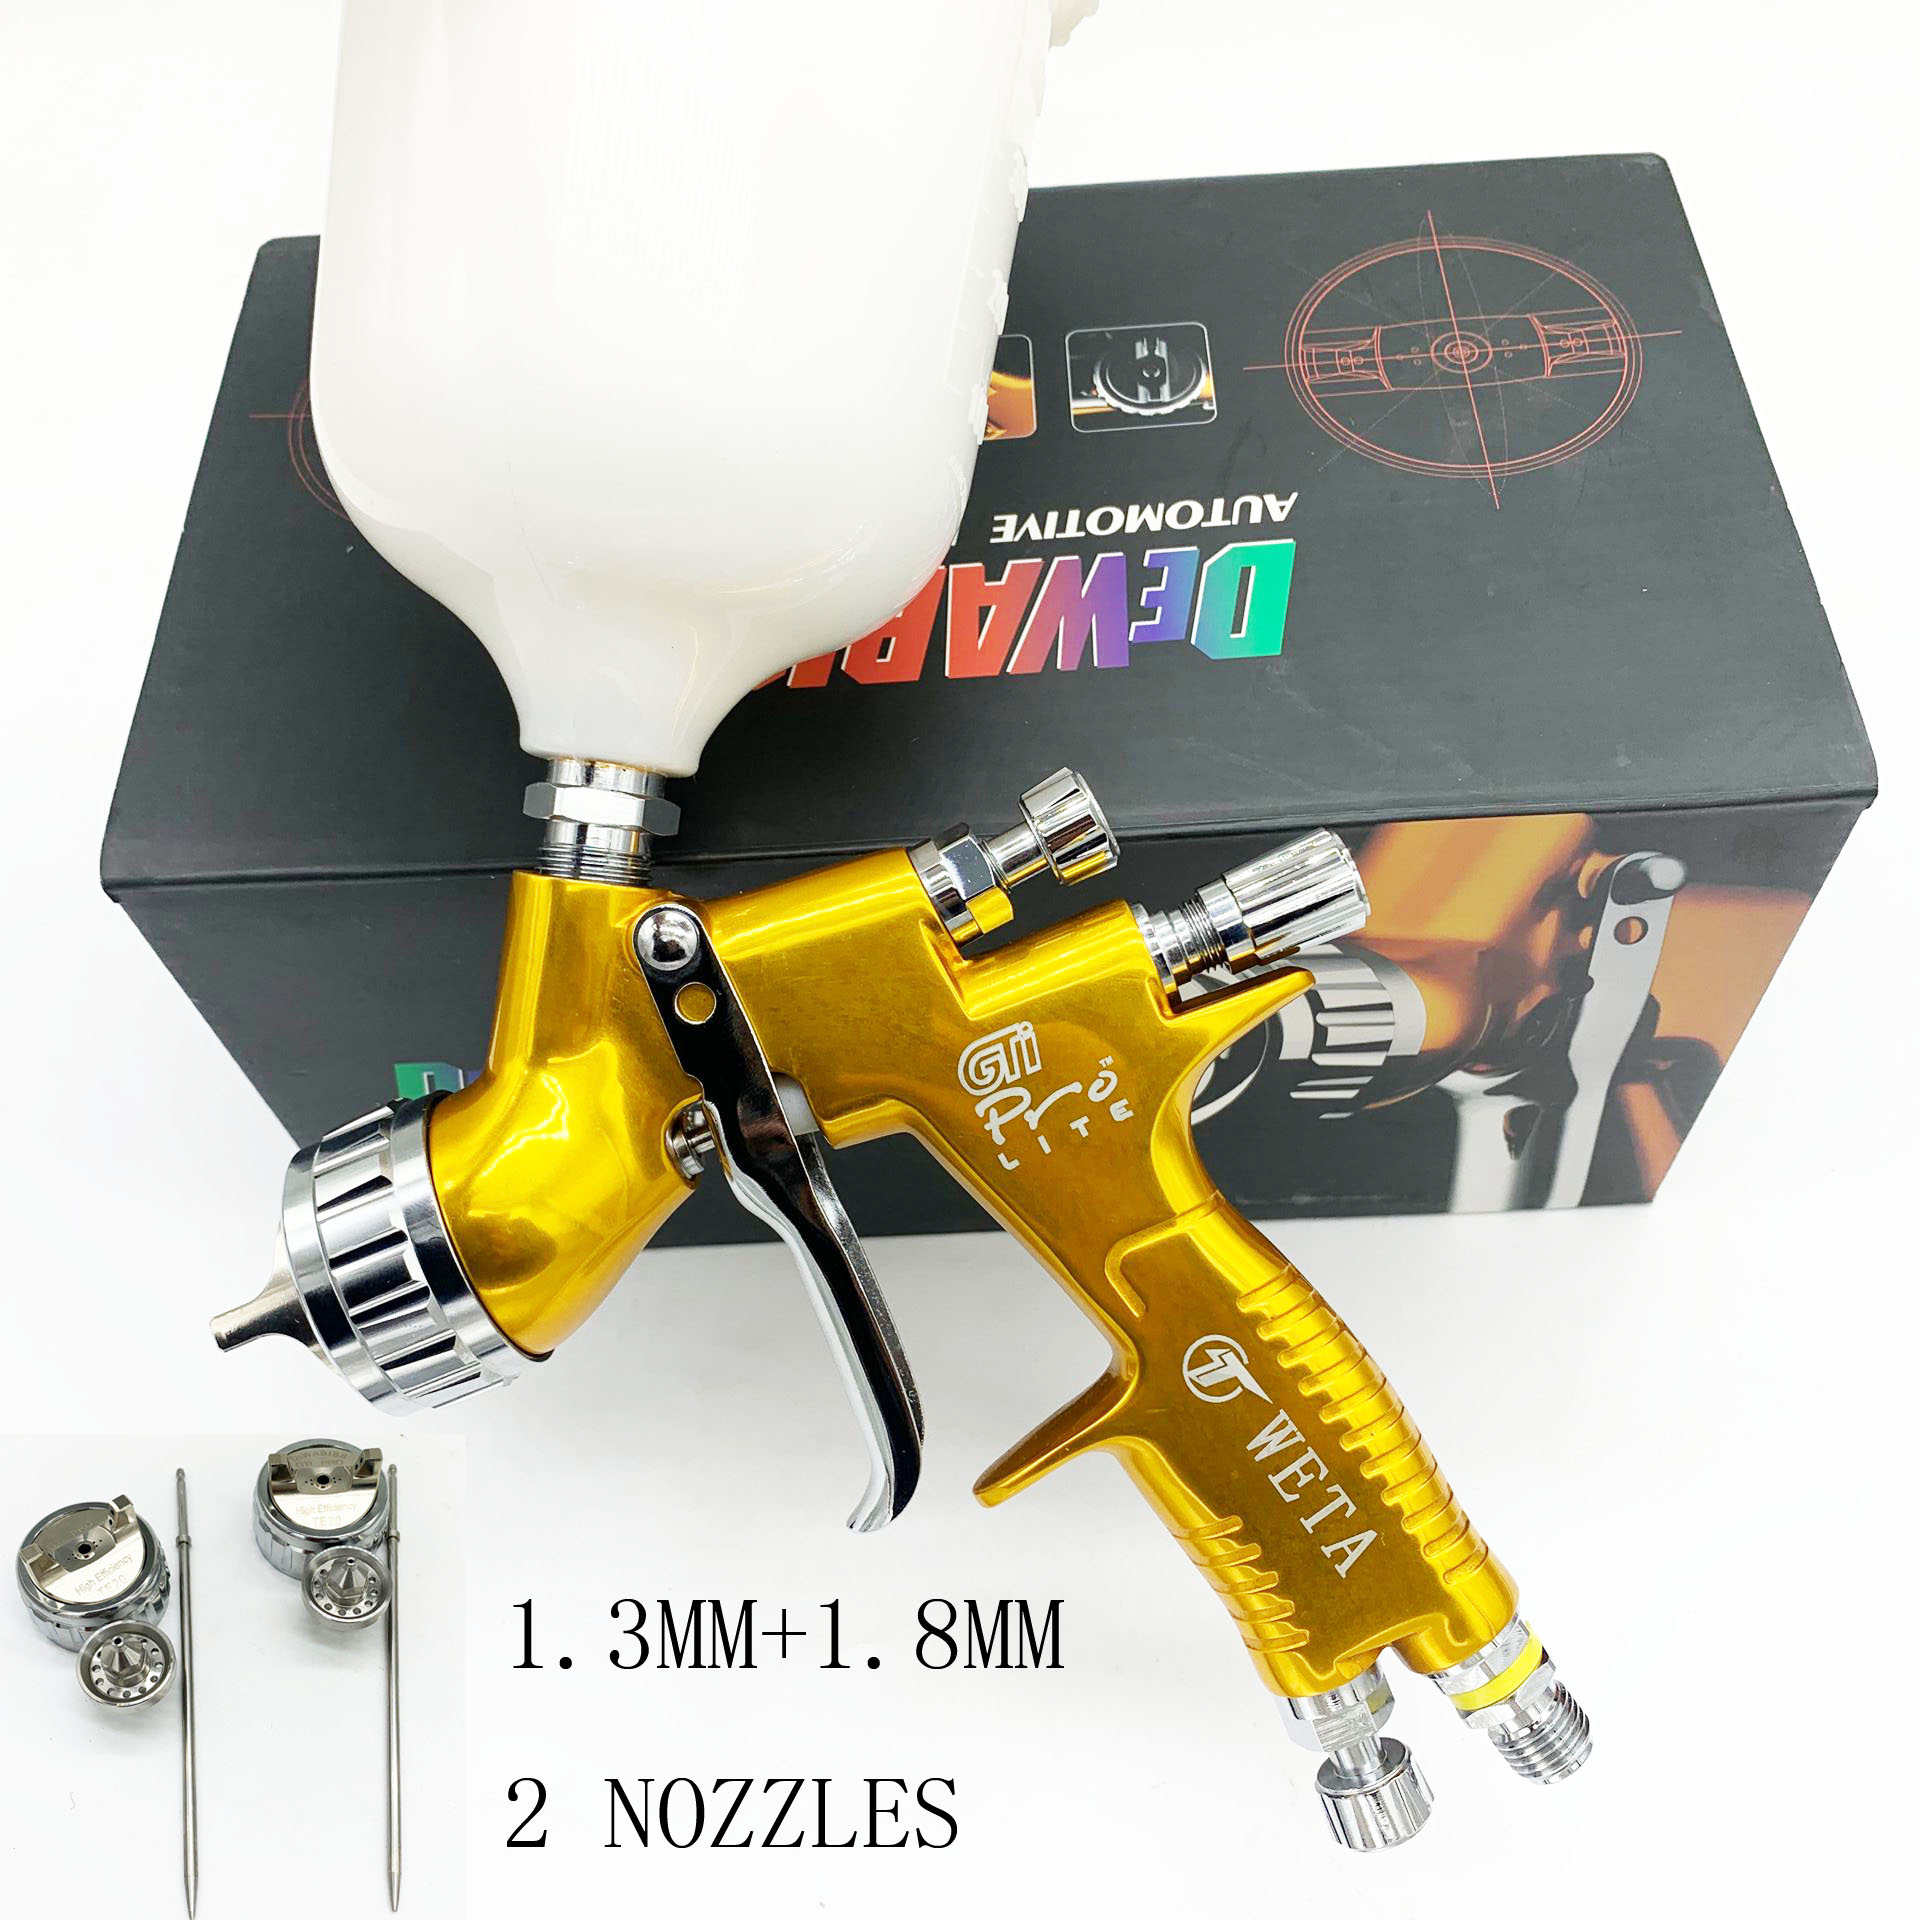 Gti Pro Spray Gun TE10/TE20/T110 1.3/1.8mm HVLP Airless Spray Painting Car Paint Airbrush Tool For Water Based High Quality